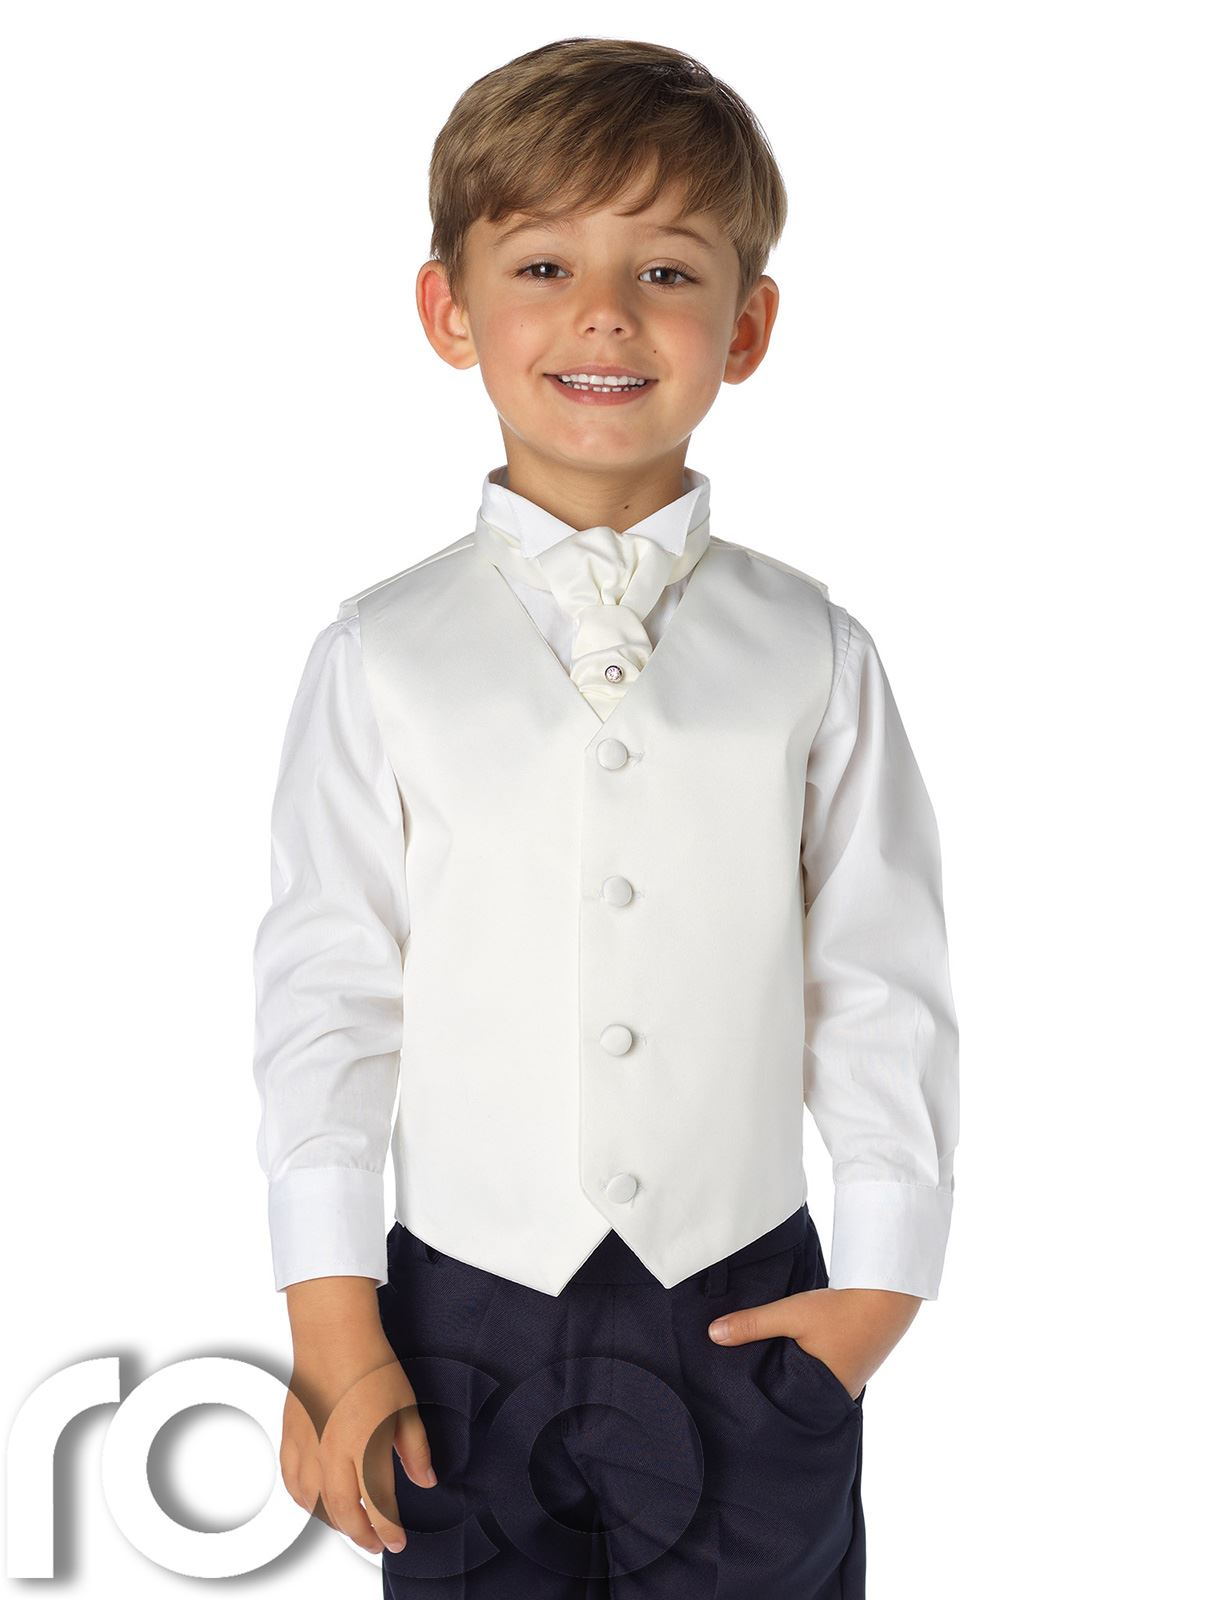 Get him suited and booted ready for the party season with Matalan's occasionwear for boys. Shop boys' suit jackets, trousers, shirts & shoes today. By browsing Matalan, you agree to our use of cookies.